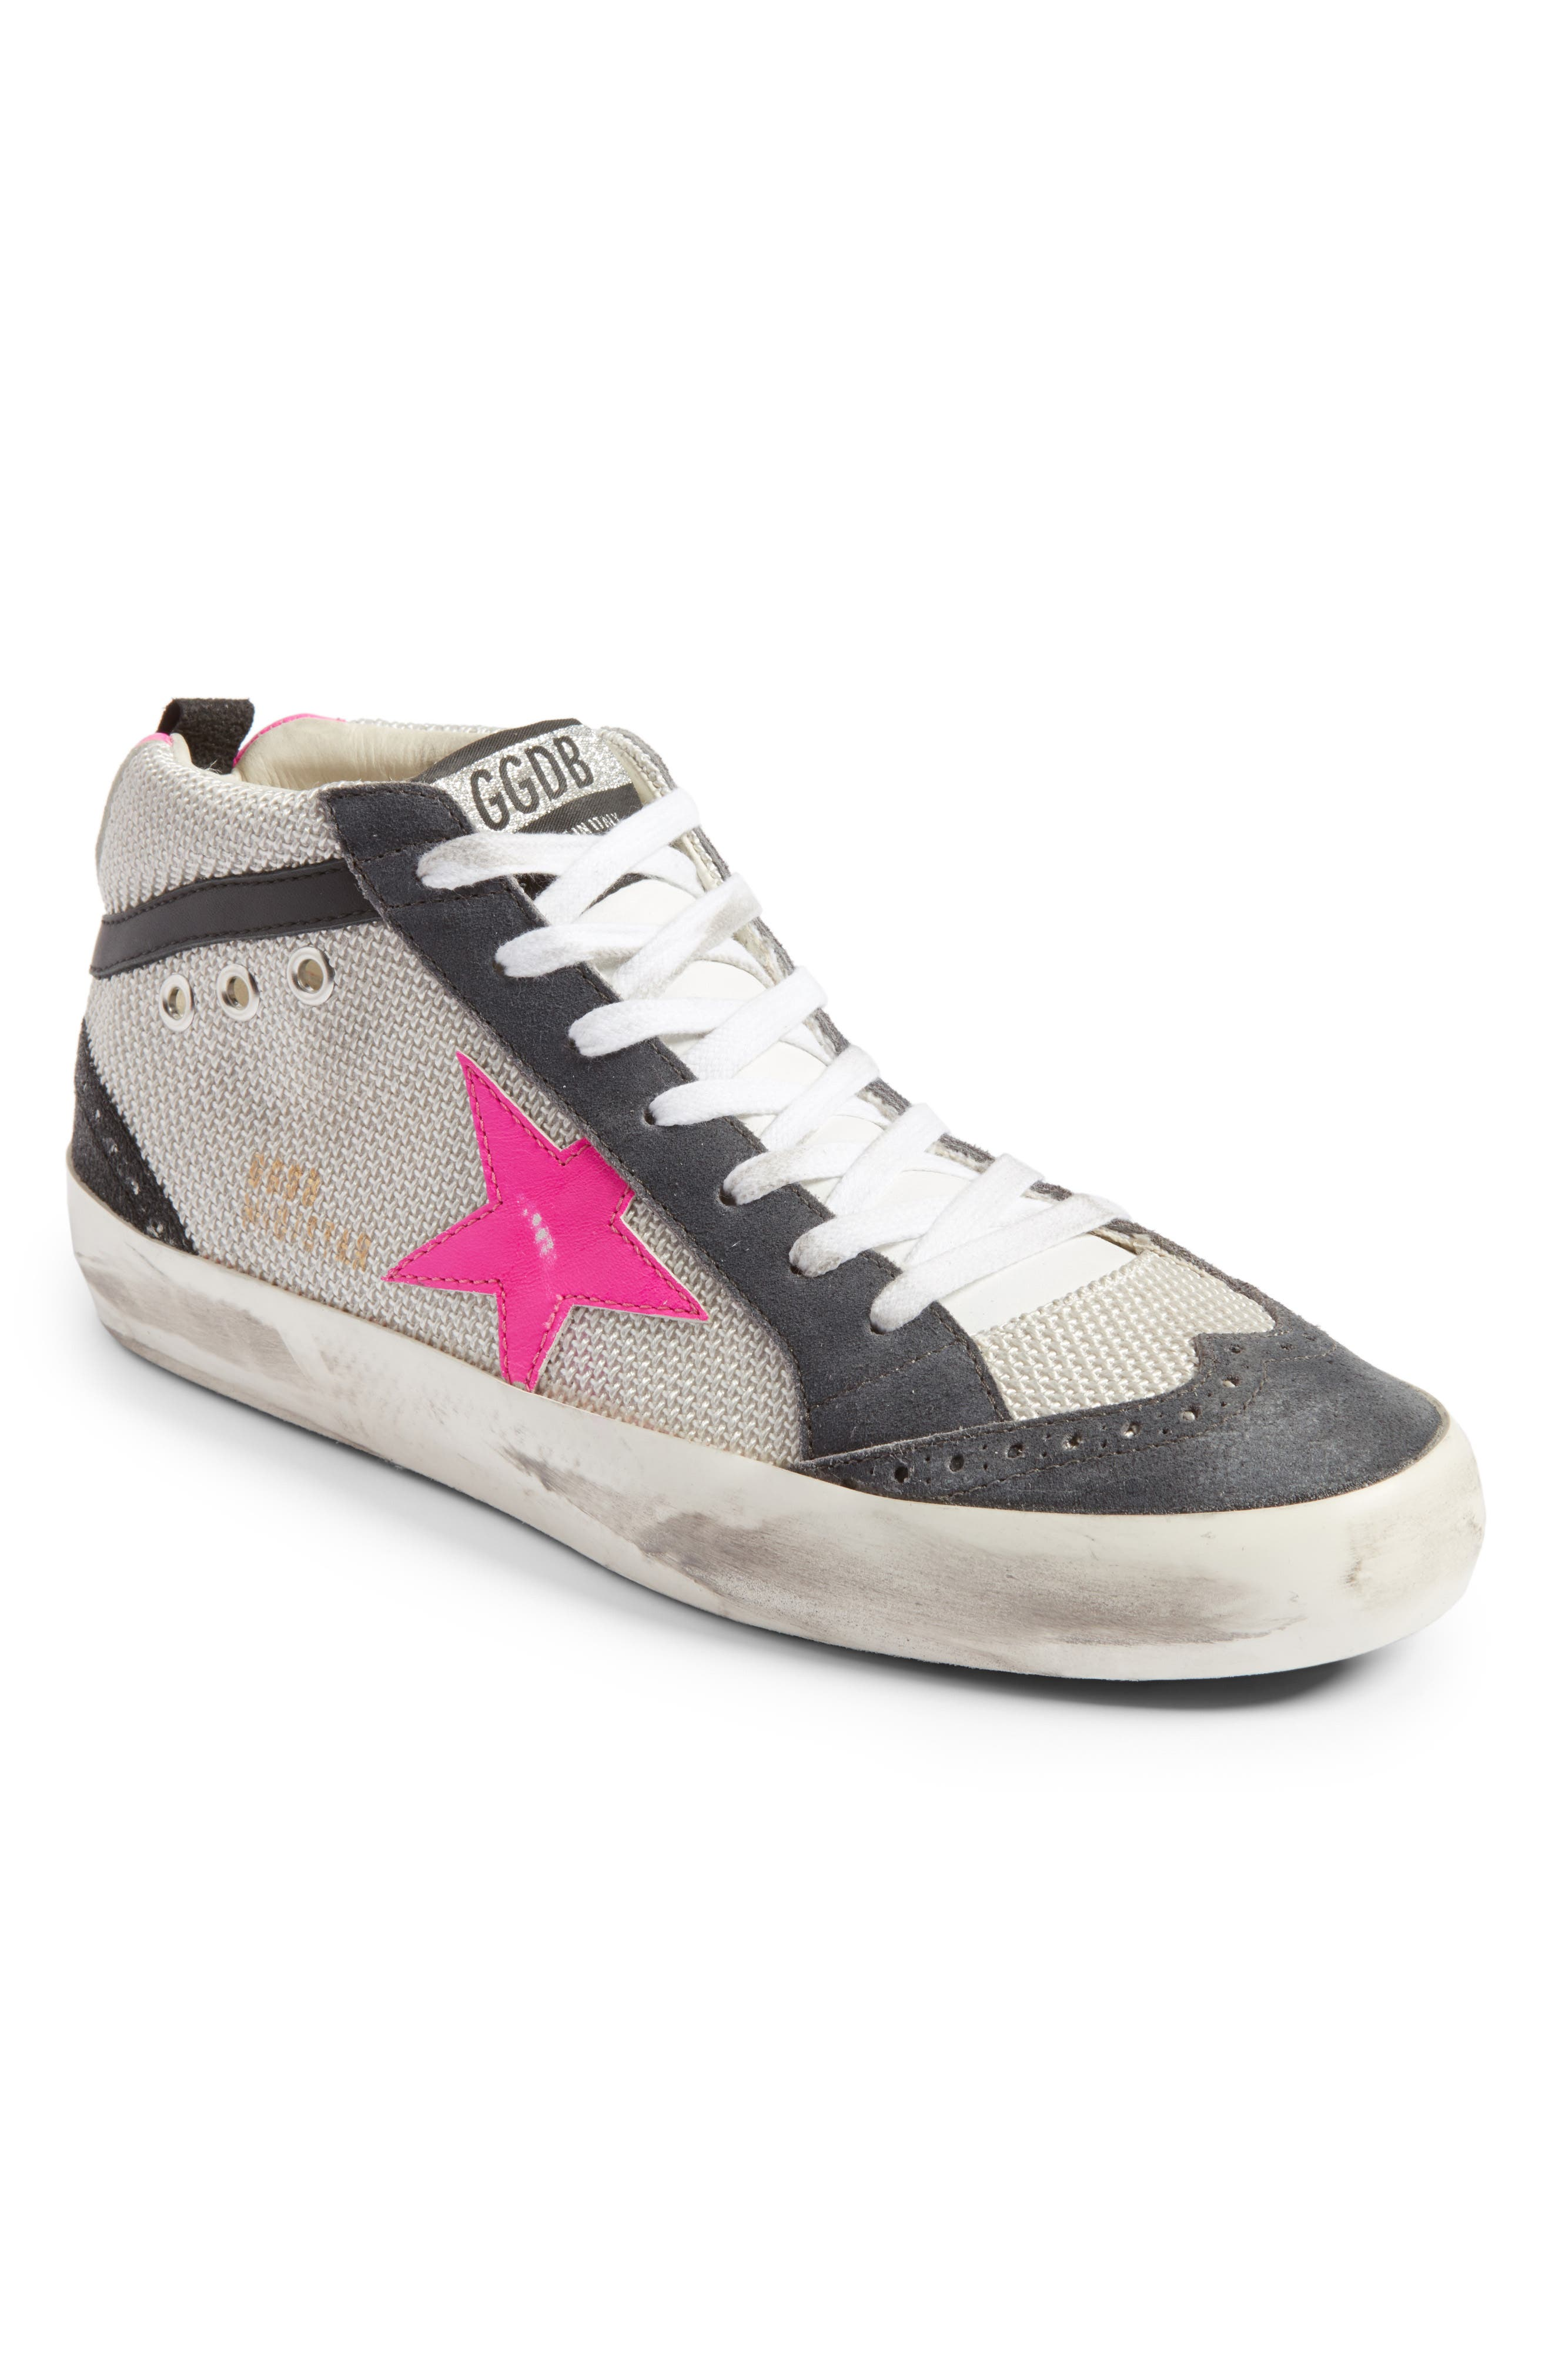 Star Mid Top Sneaker,                         Main,                         color, Grey/ Pink